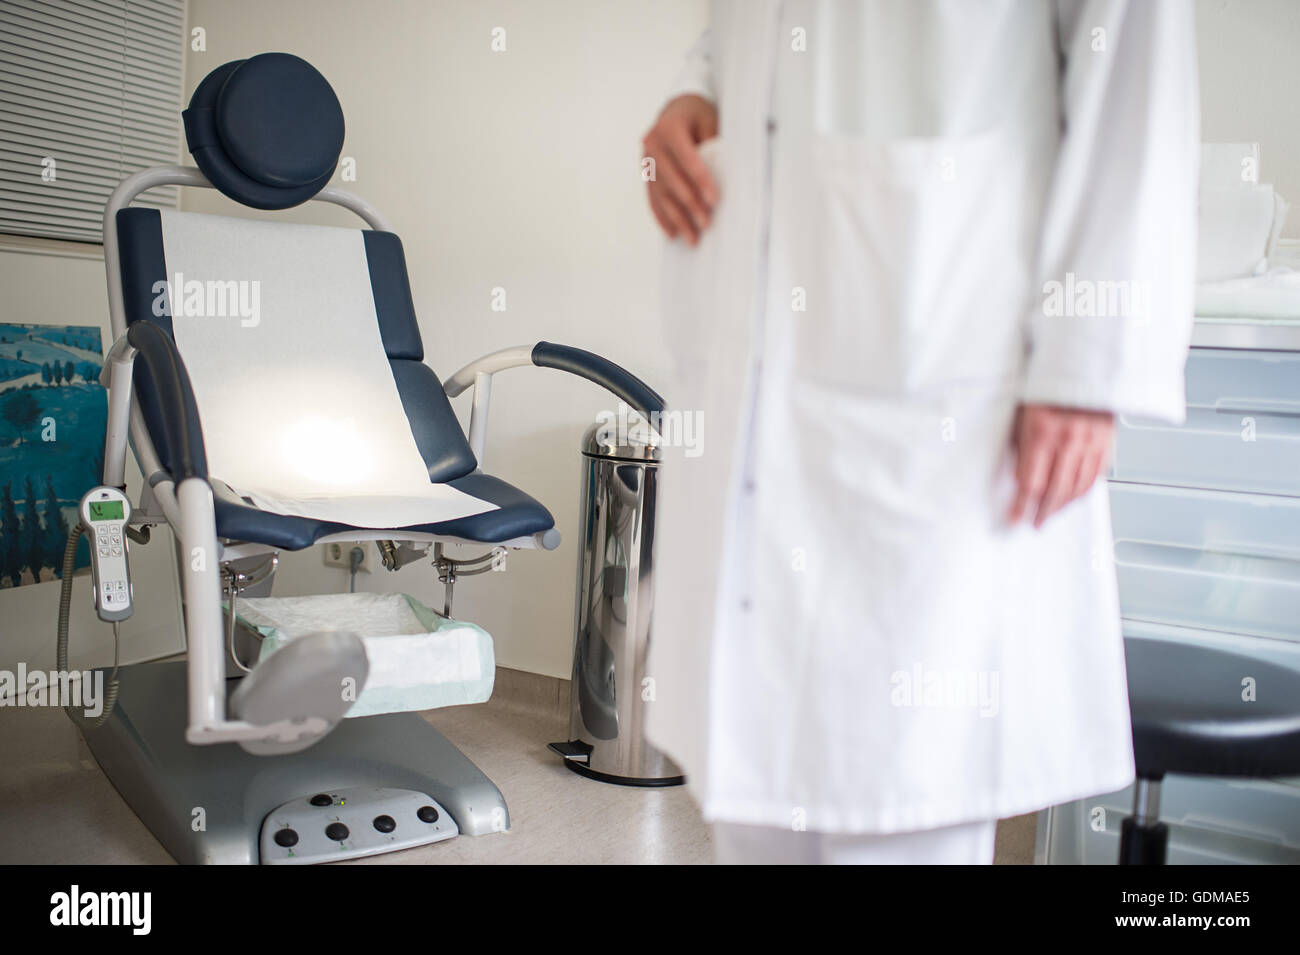 Berlin, Germany. 18th July, 2016. An examination room with a gynecological examination chair can be seen in the - Stock Image